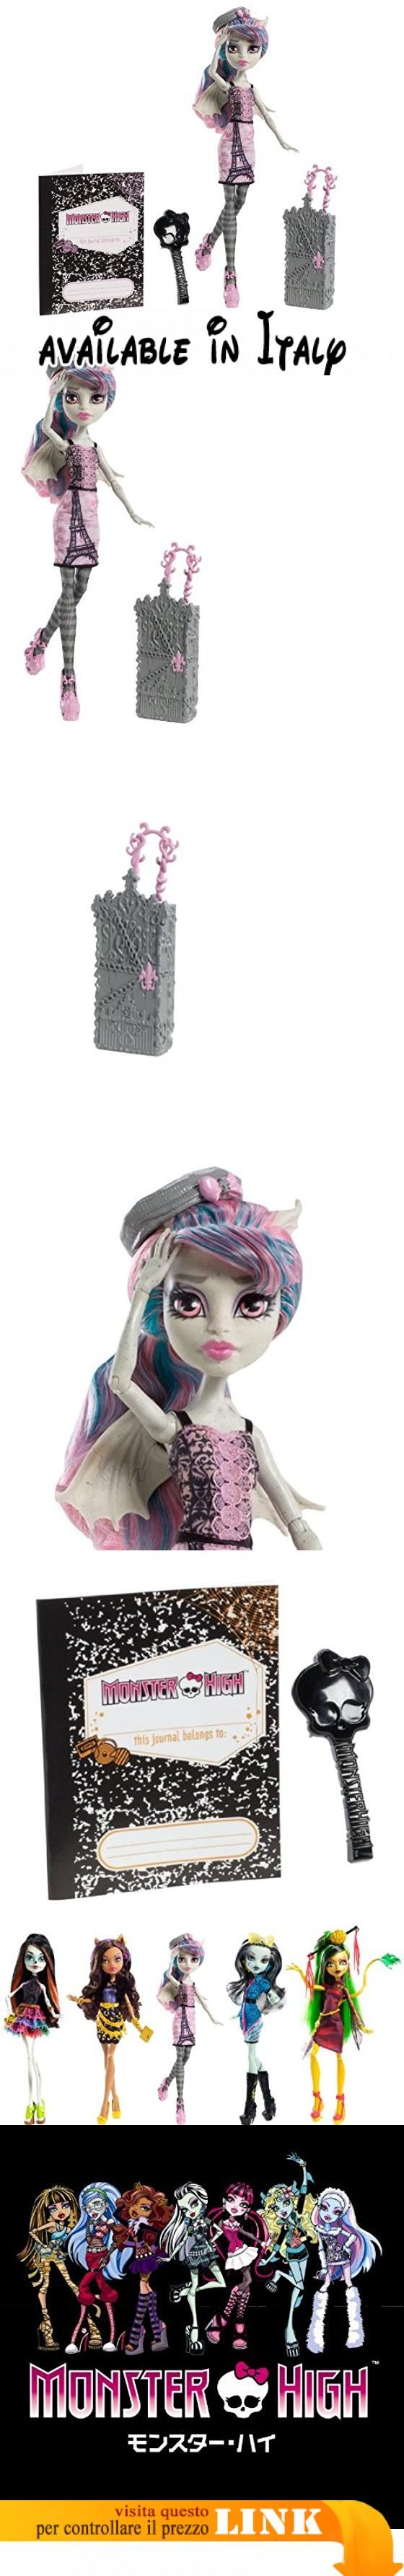 Mattel-Y7672-Monster High Scaris Doll - Rochelle Goyle. <span>The ghouls of Monster High are hitting the skies for their first trip abroad together in monster style</span>. <span>They are freakishly fabulous at home and abroad</span>. <span>Doll is fully articulated so she can be posed in many different ways</span>. <span>Each doll wears a new travel outfit complete with jewelry and comes with a rolling suitcase and travel journal</span> #Giocattolo #TOYS_AND_GAMES